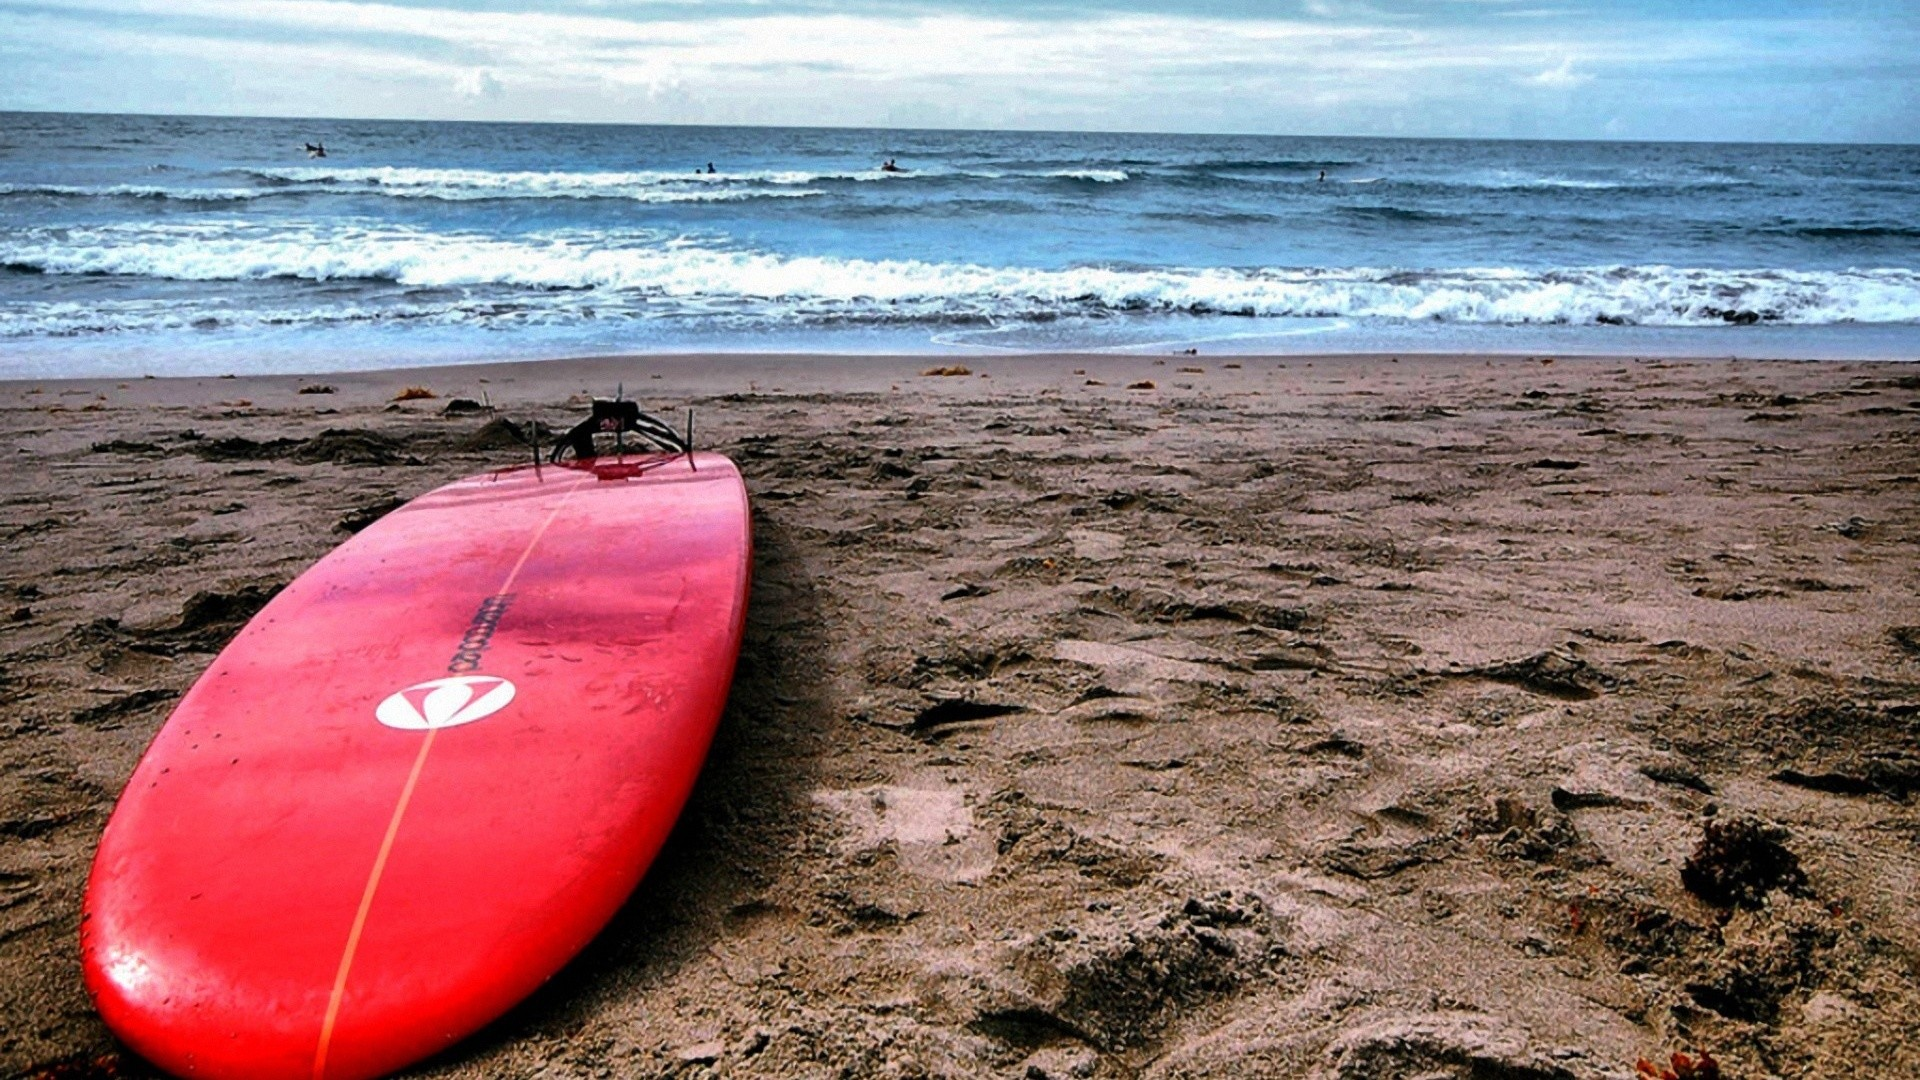 Red Surf Board. How to set wallpaper on your desktop? Click the  download link from above and set the wallpaper on the desktop from your OS.